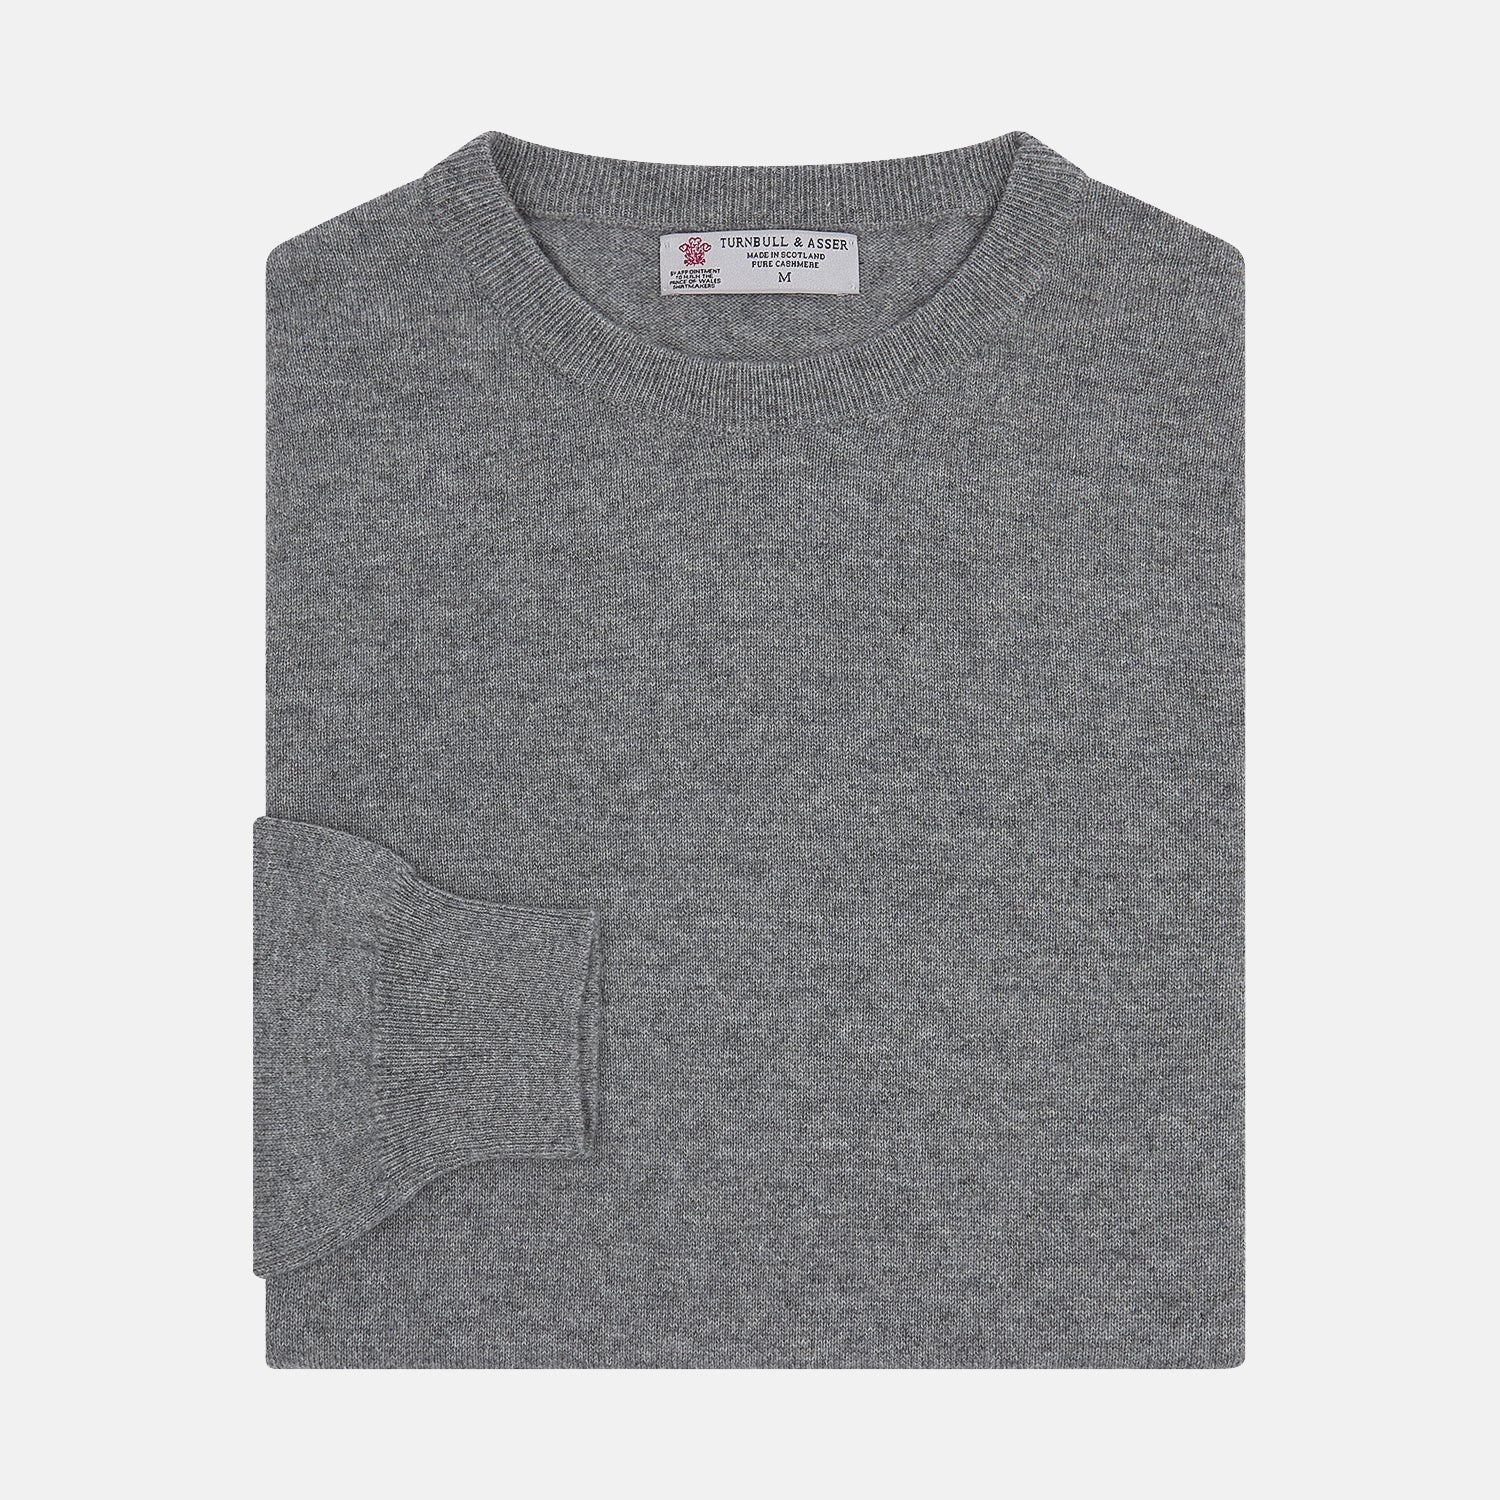 Flannel Grey Cashmere Jumper - M from Turnbull & Asser